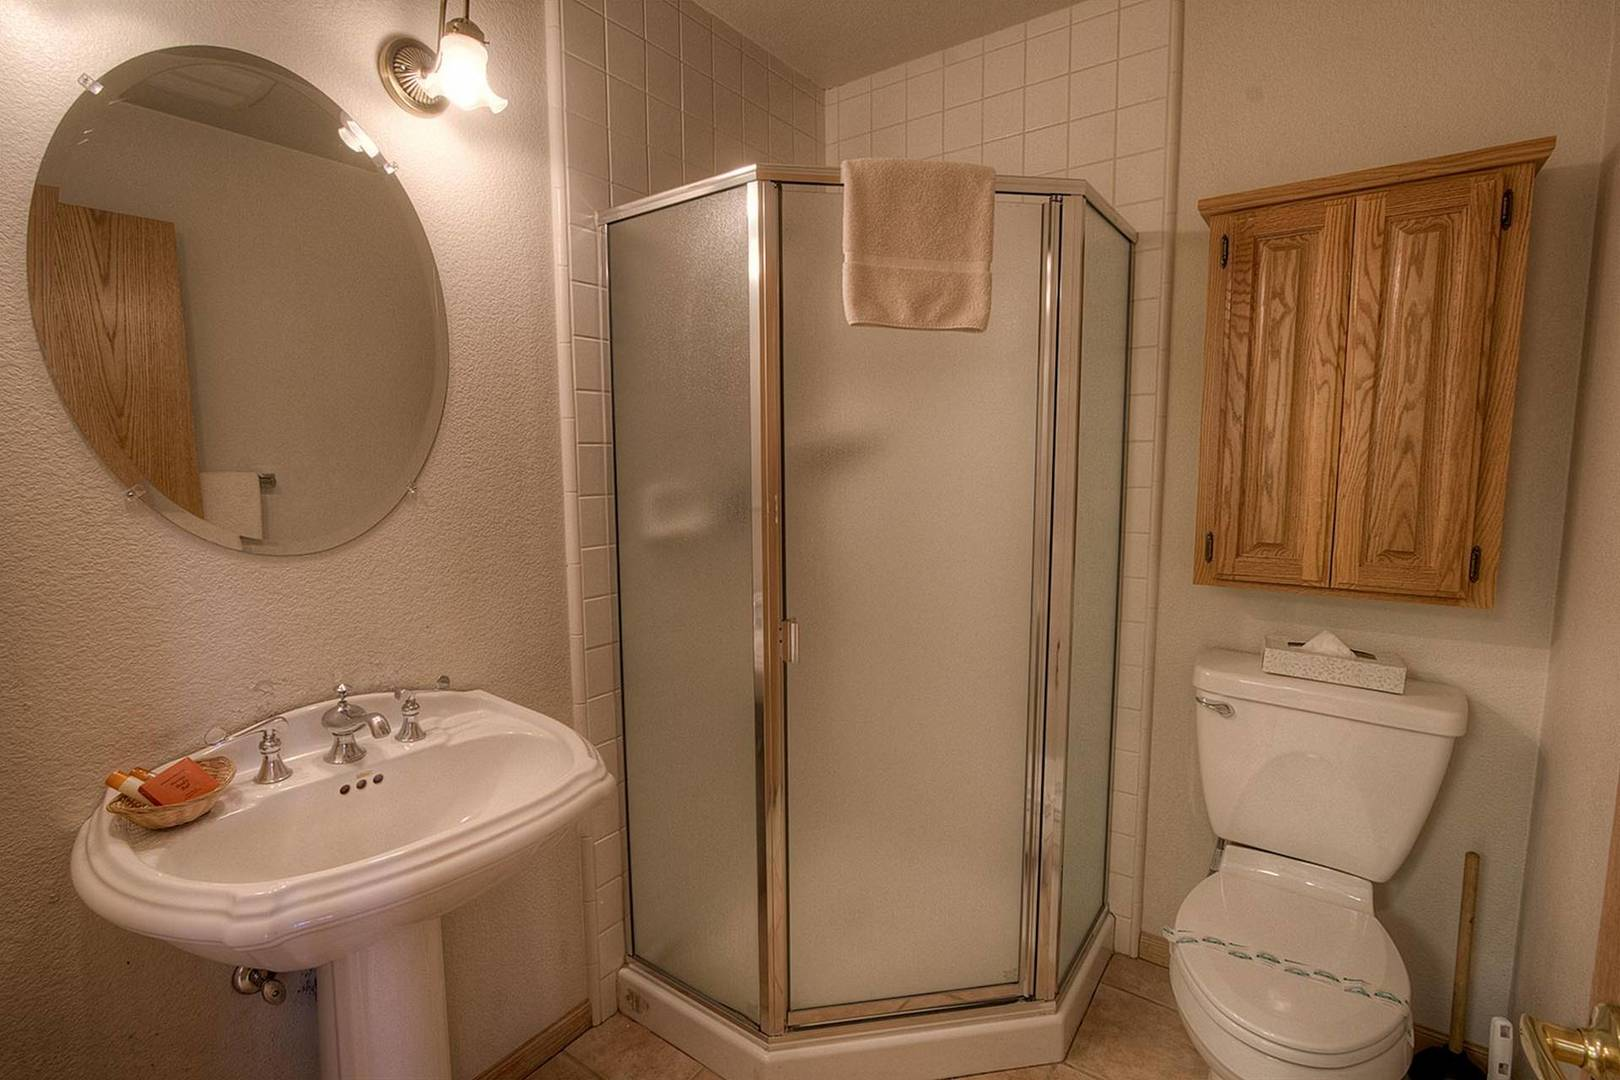 hch1306 bathroom